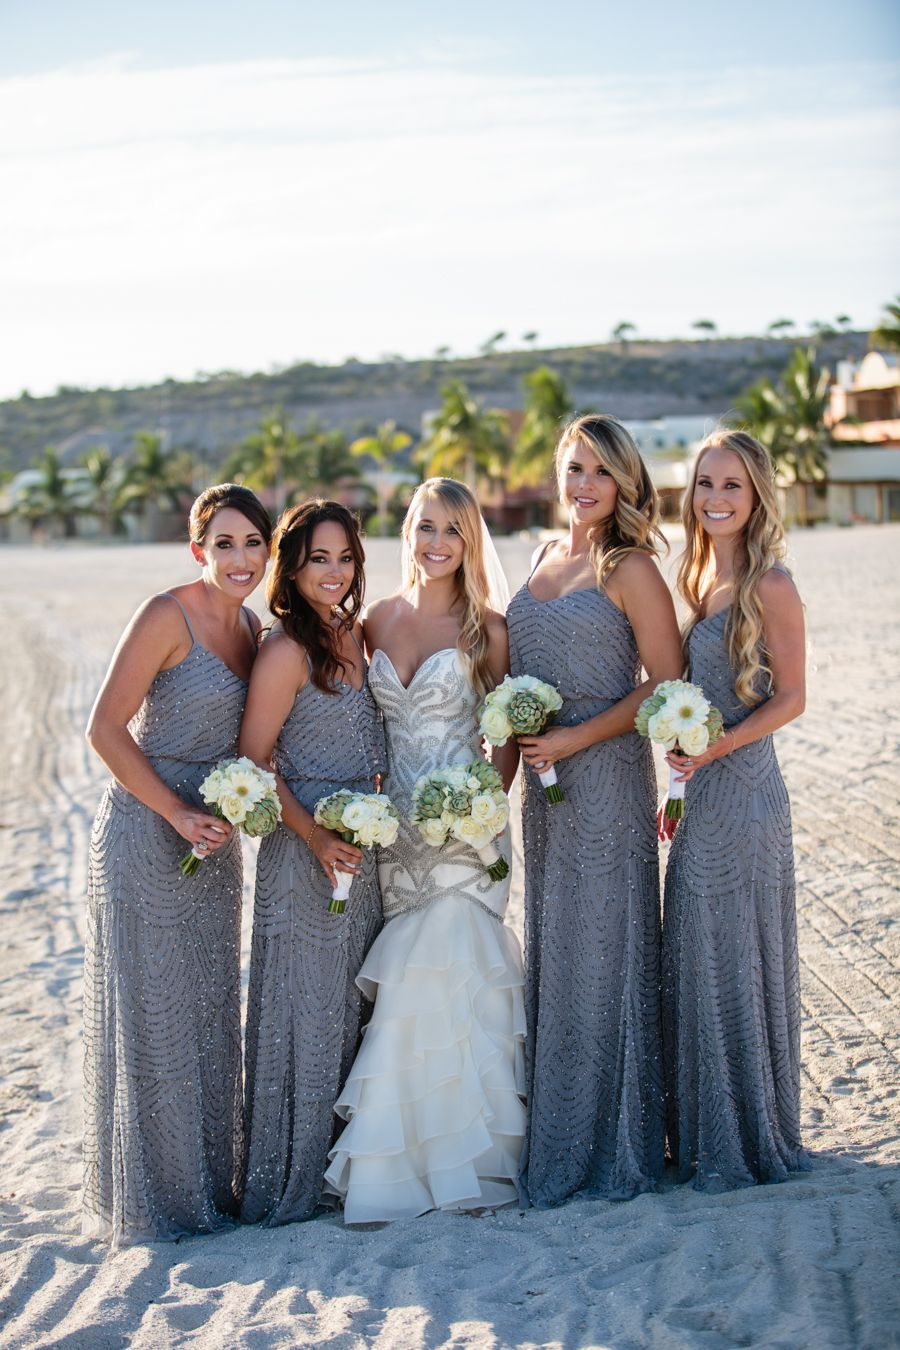 Bride And Bridesmaids In Silver Theme Wedding Wedding Gown By St